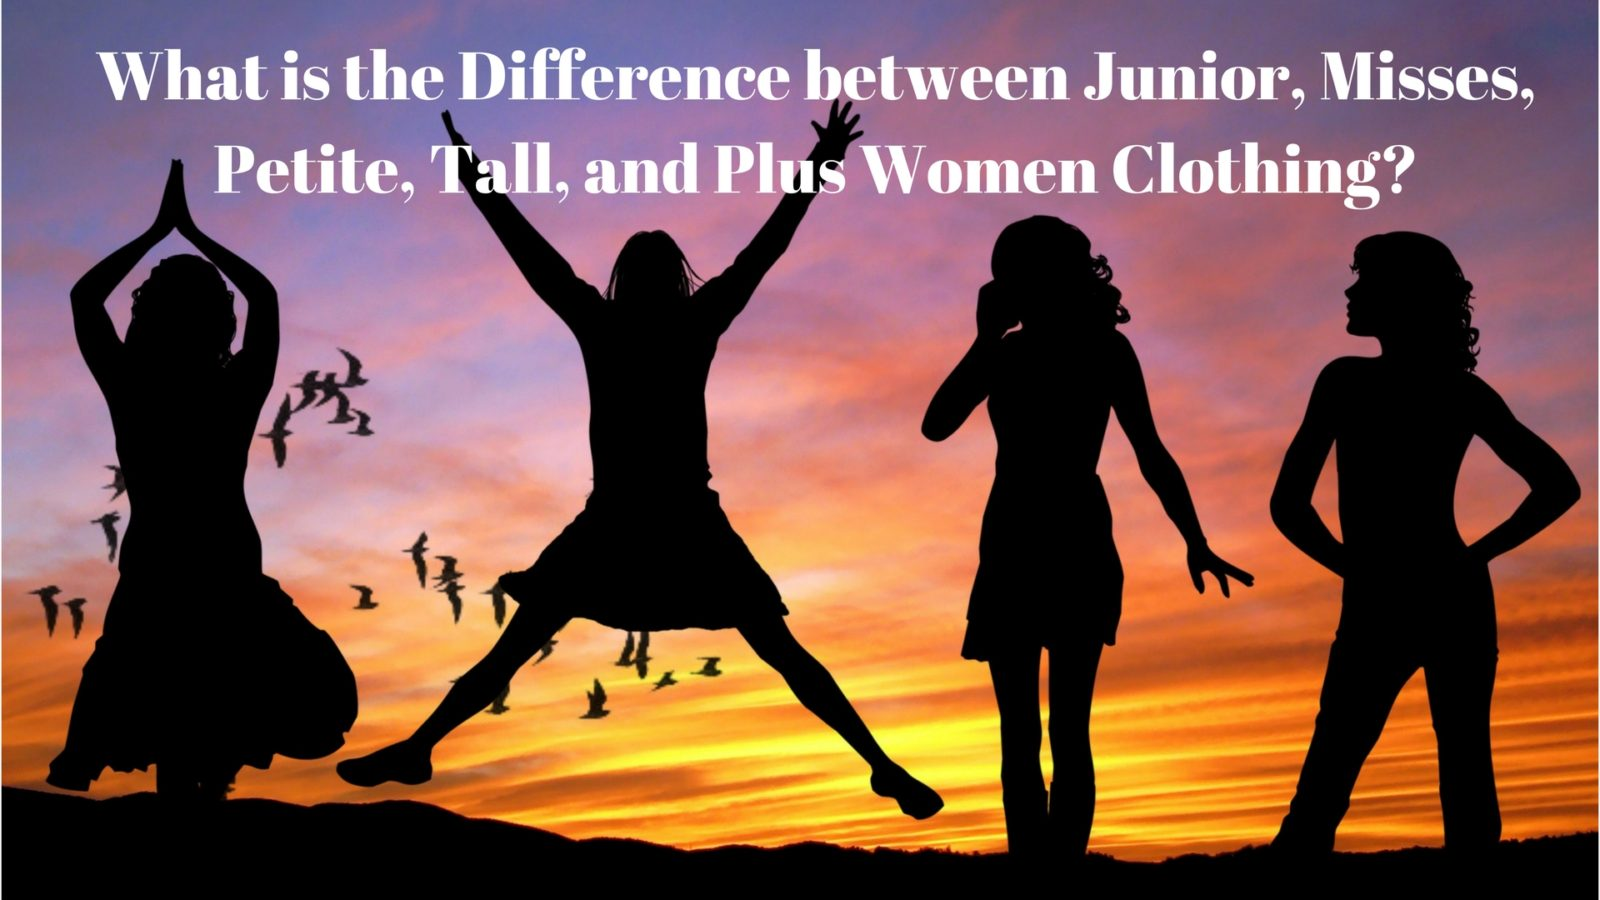 What is the Difference between Junior and Misses_